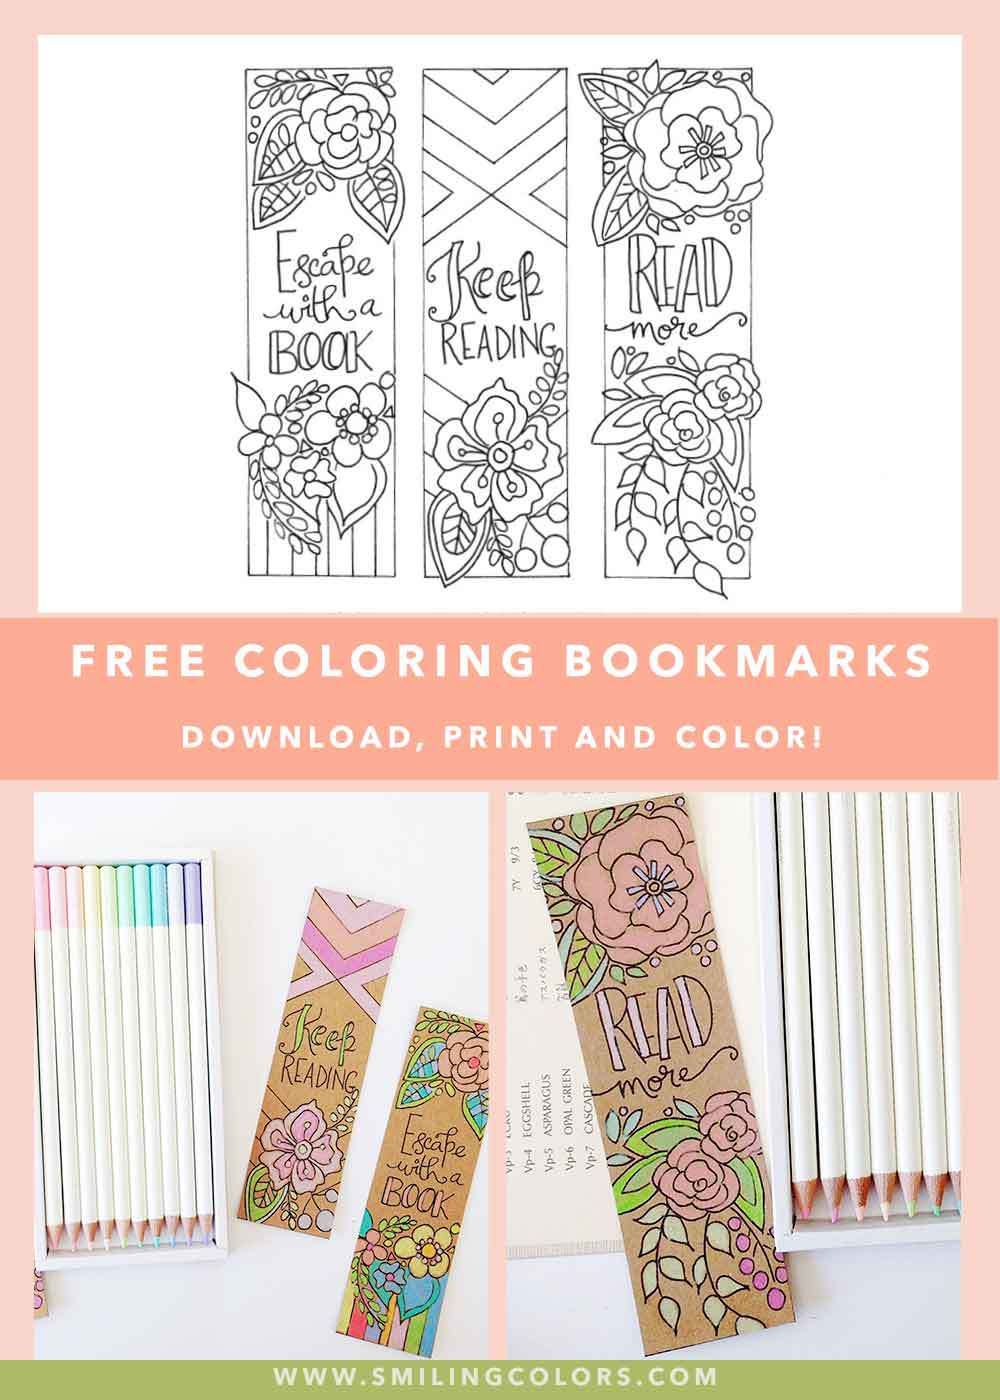 Free coloring bookmarks to make your reading colorful | Lesezeichen ...